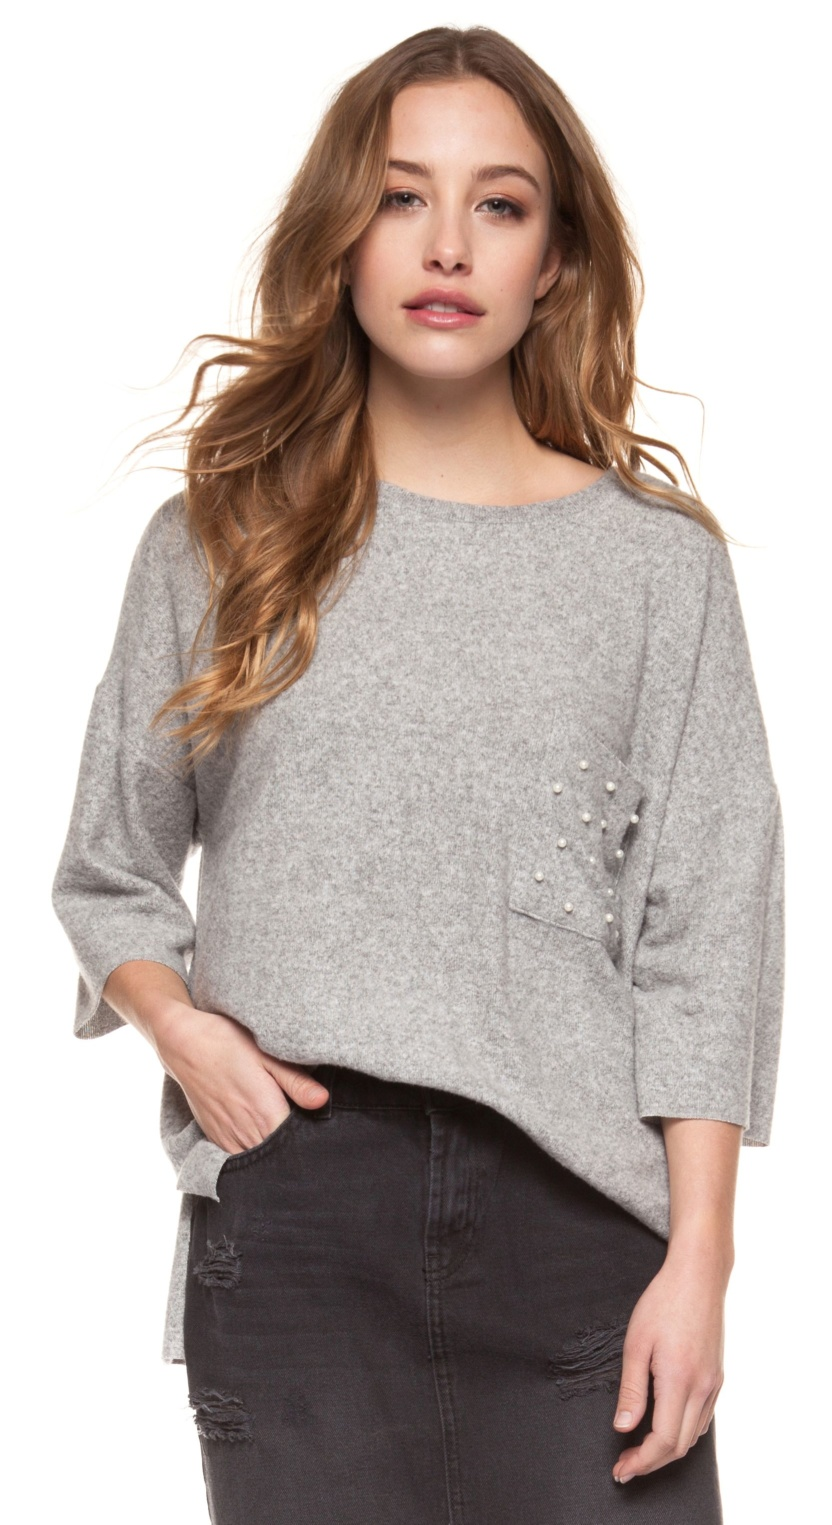 Bracelet length sleeve crew neck tee with pearl detail at front pocket